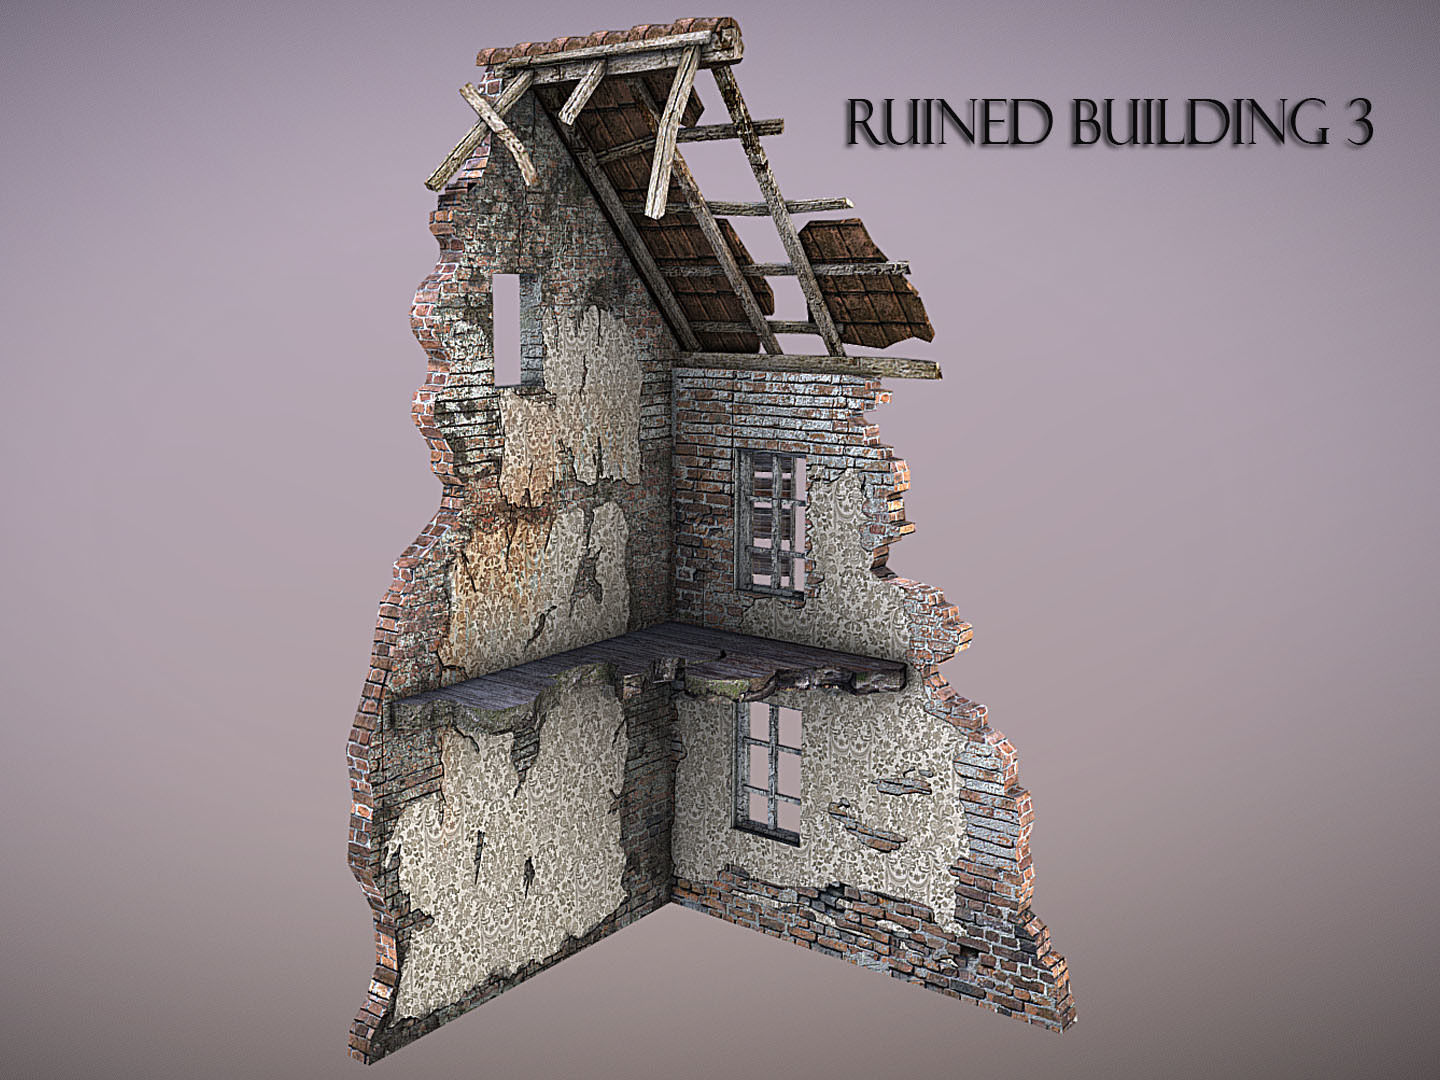 Ruined Building 3